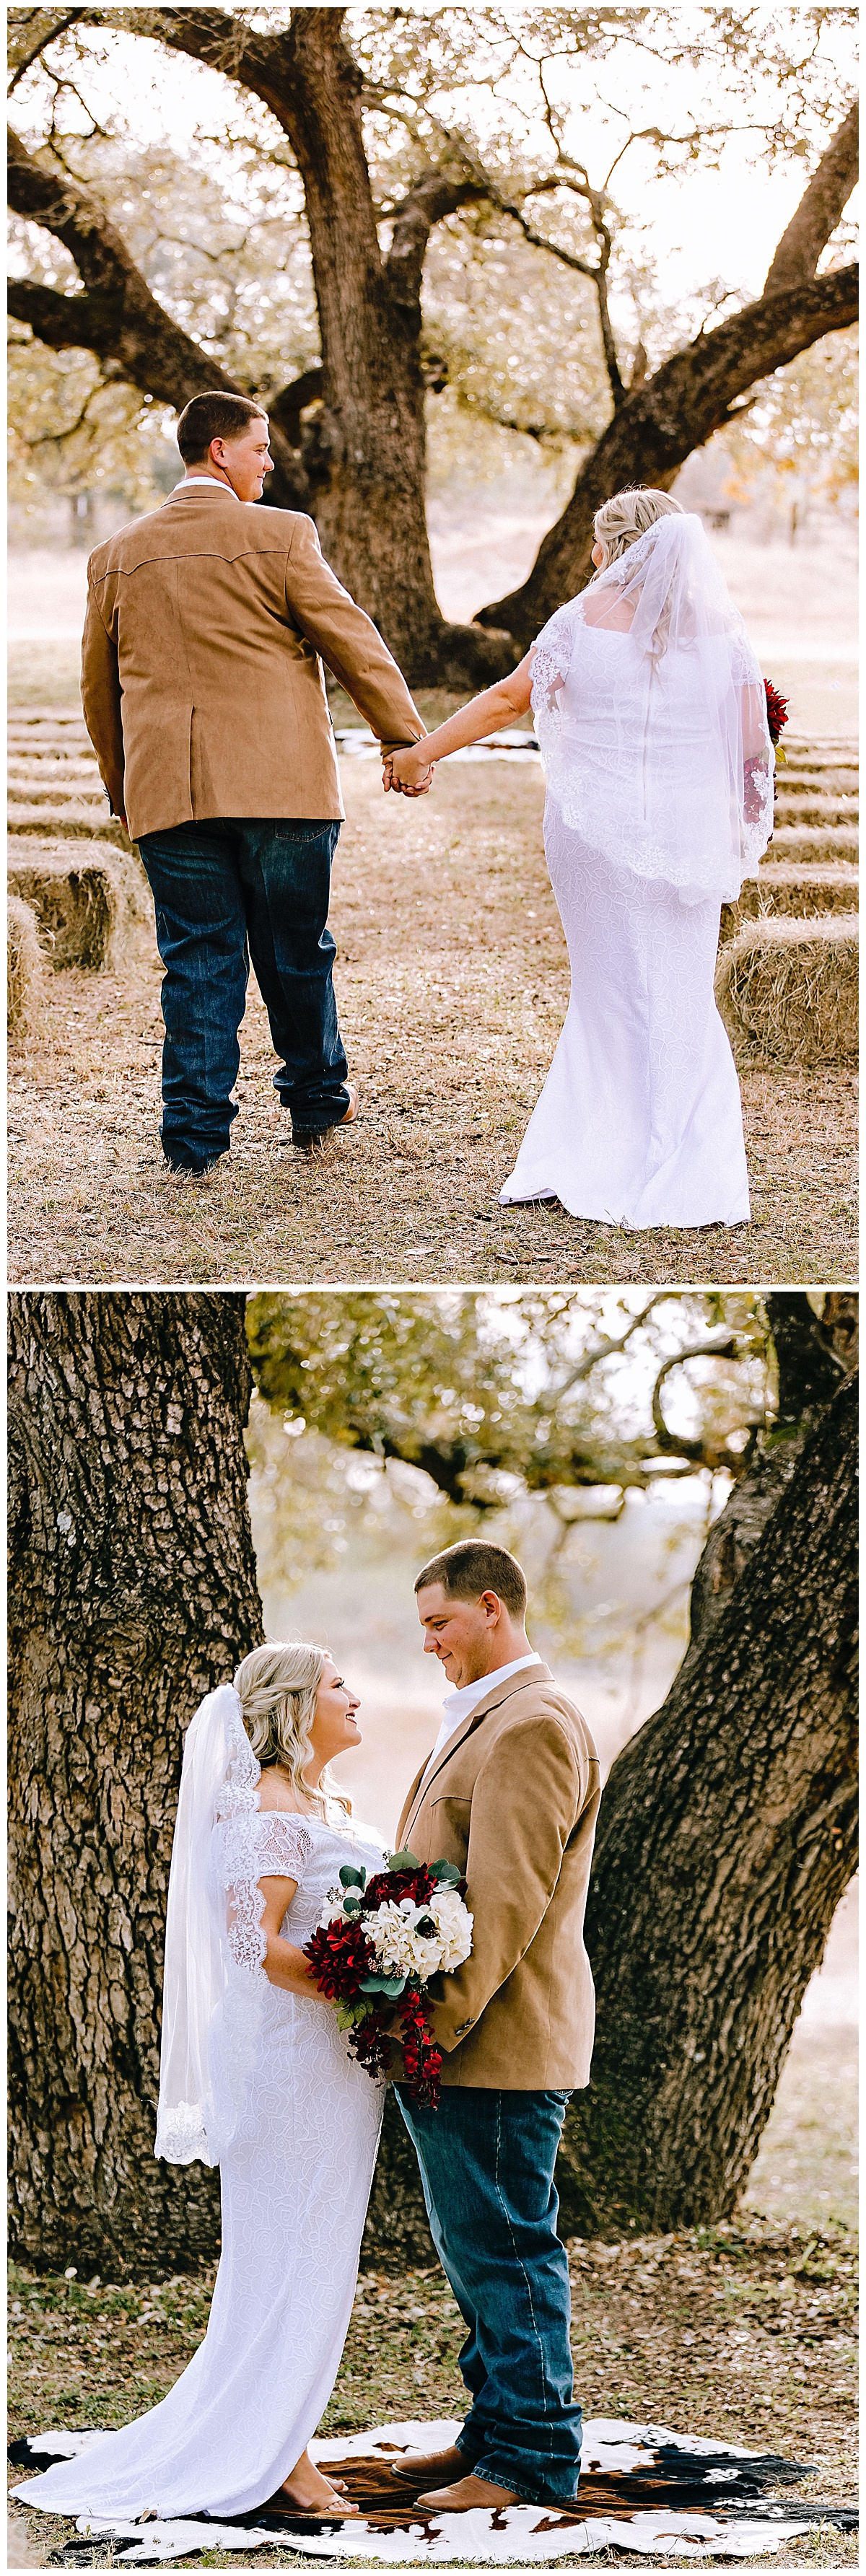 Wedding-Photographer-LaVernia-Texas-Ceremony-Under-the-Trees-Bride-Groom-Fall-McDonald-Carly-Barton-Photography_0013.jpg